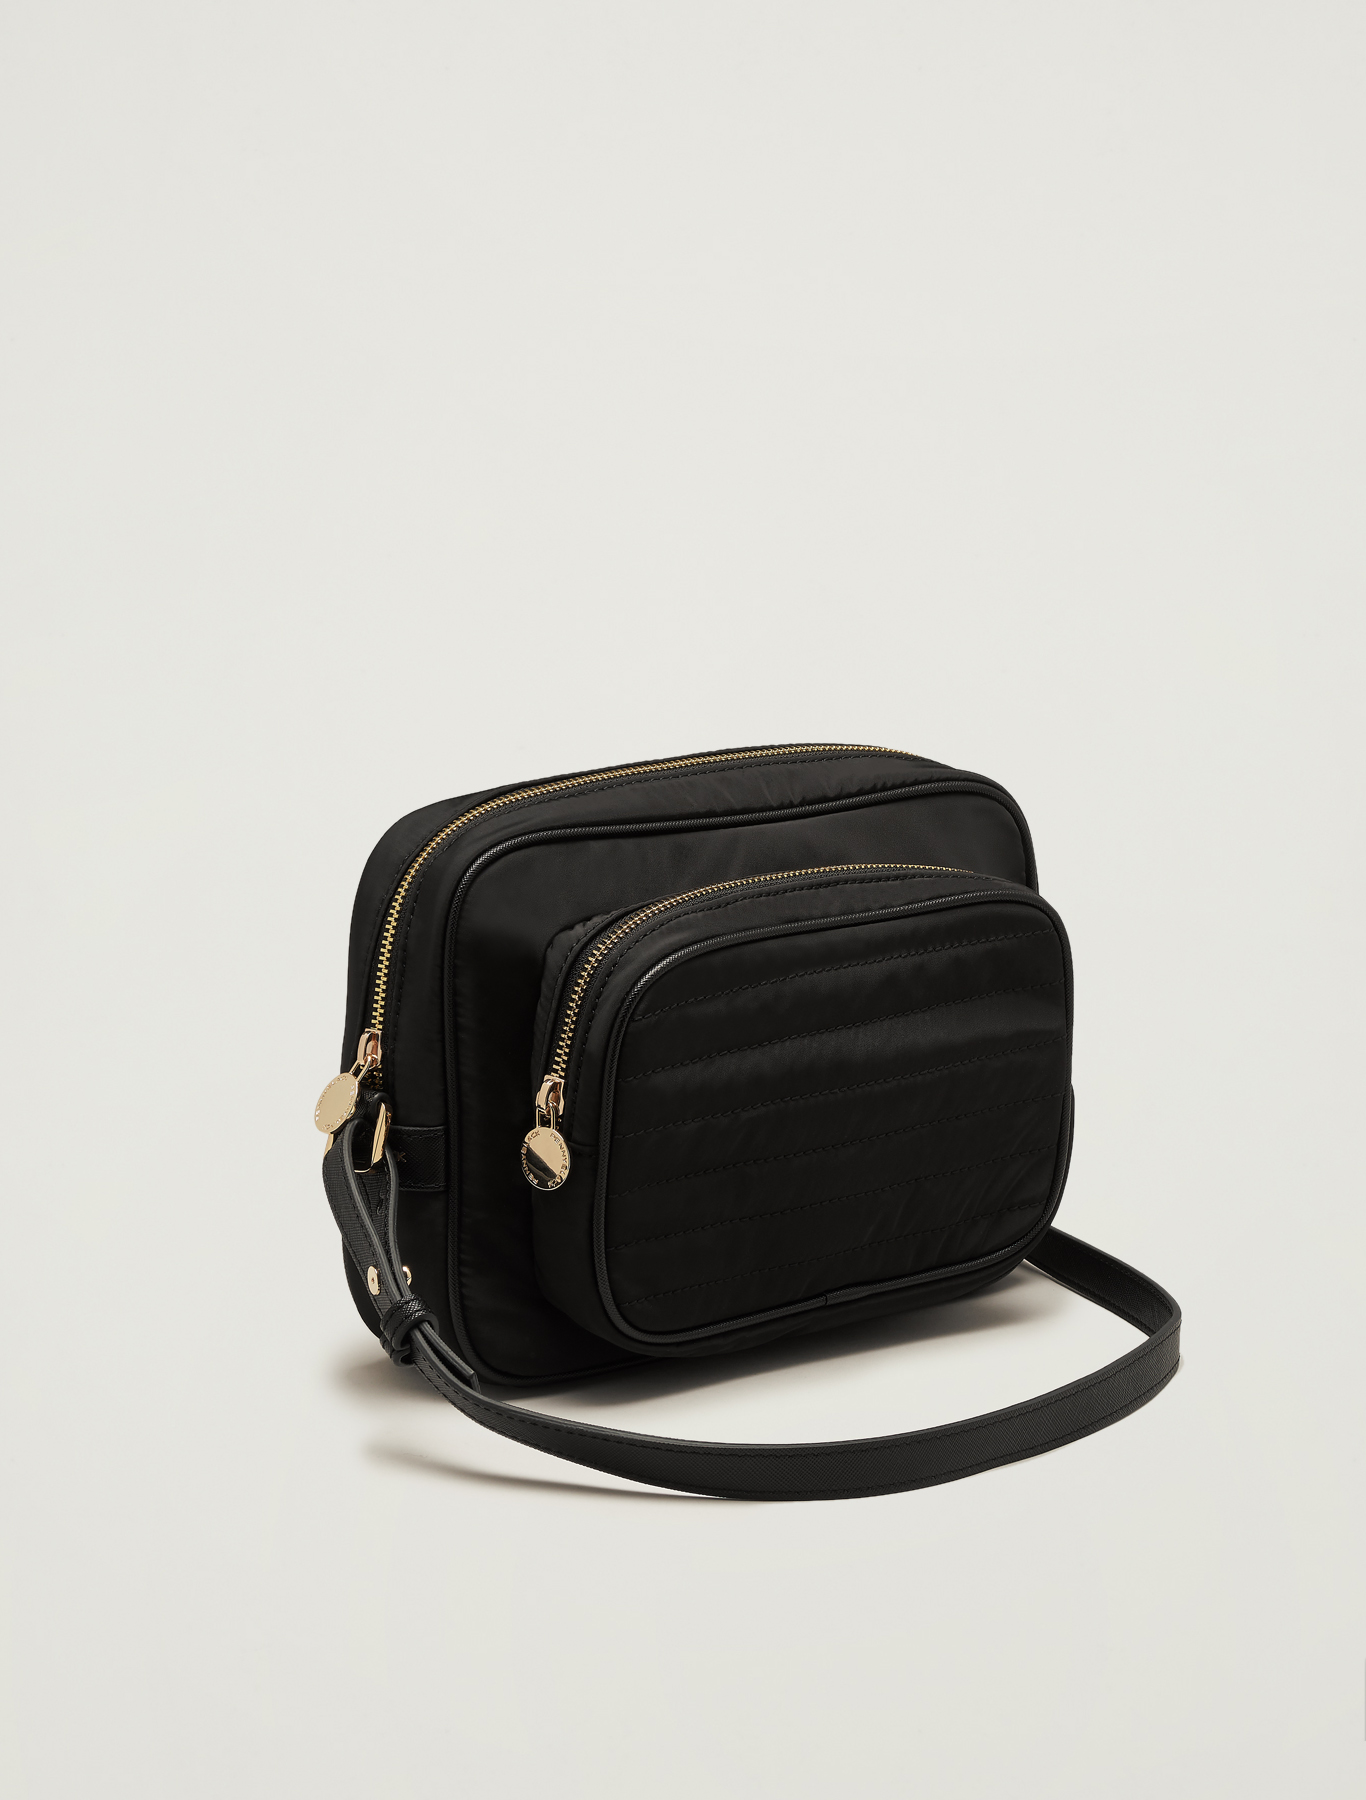 Shoulder bag in technical fabric - black - pennyblack